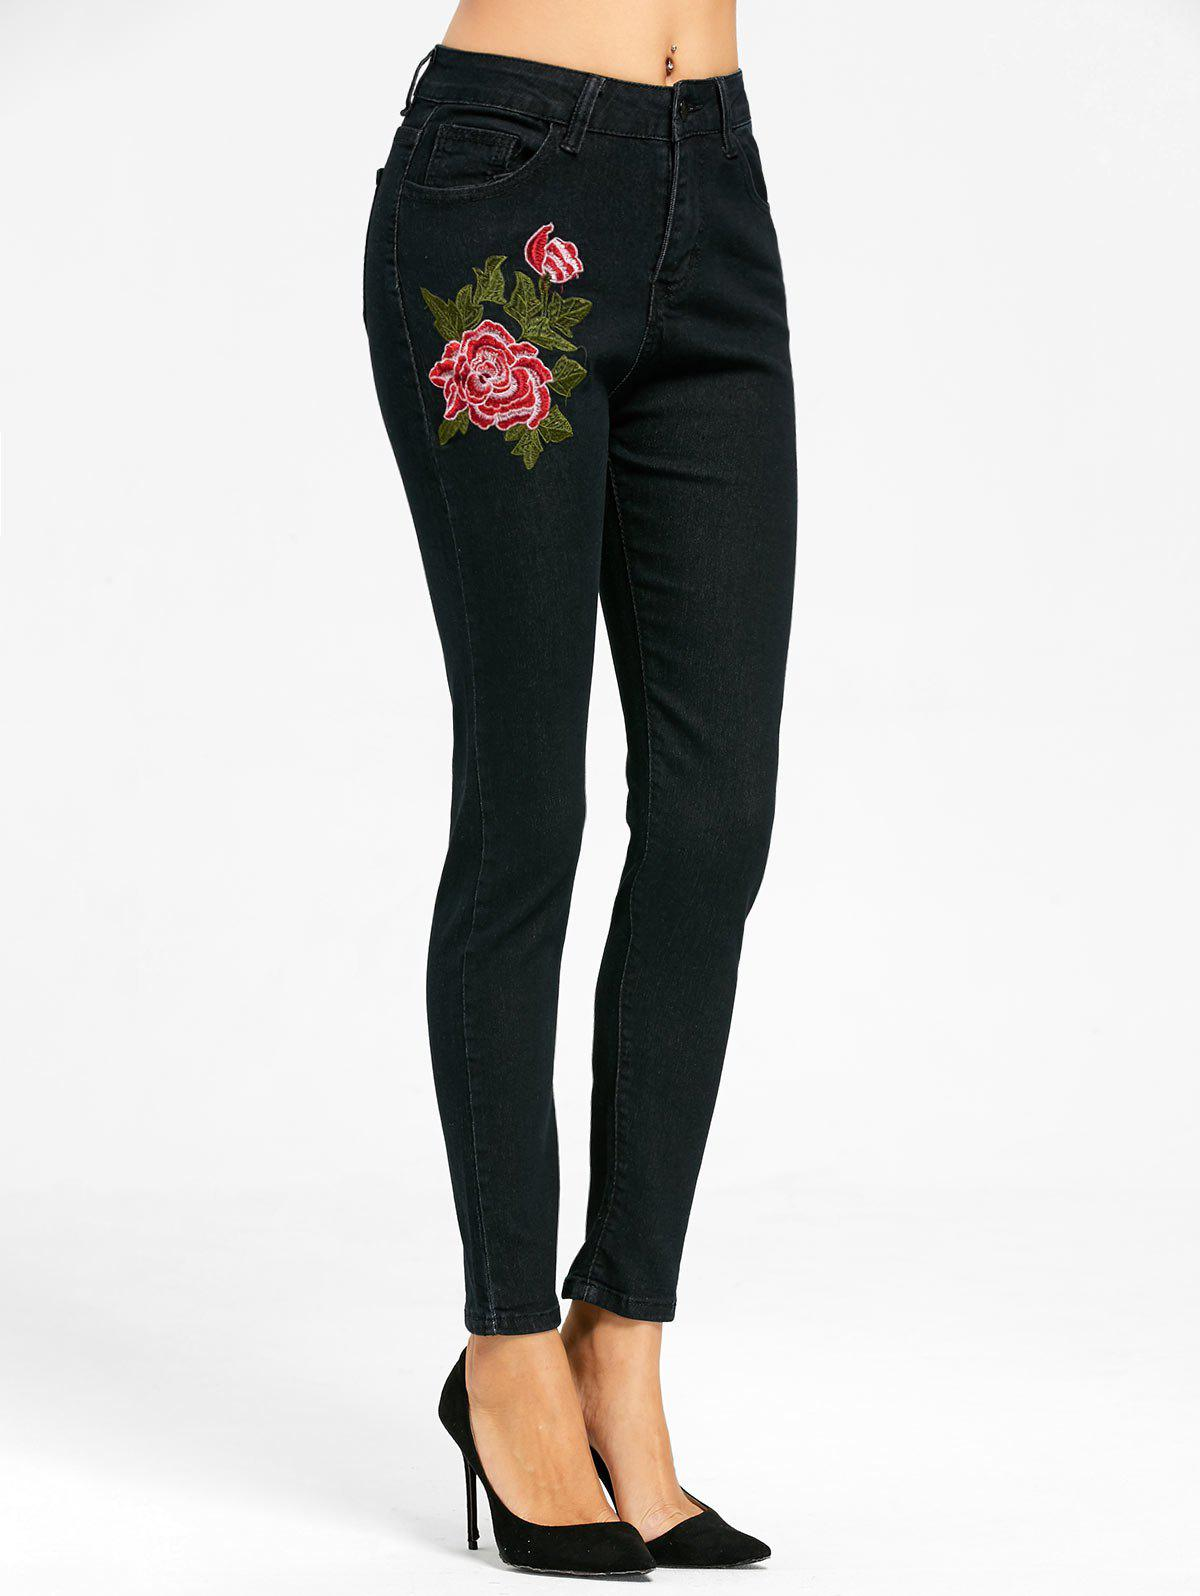 New Floral Embroidered Skinny Zipper Fly Jeans